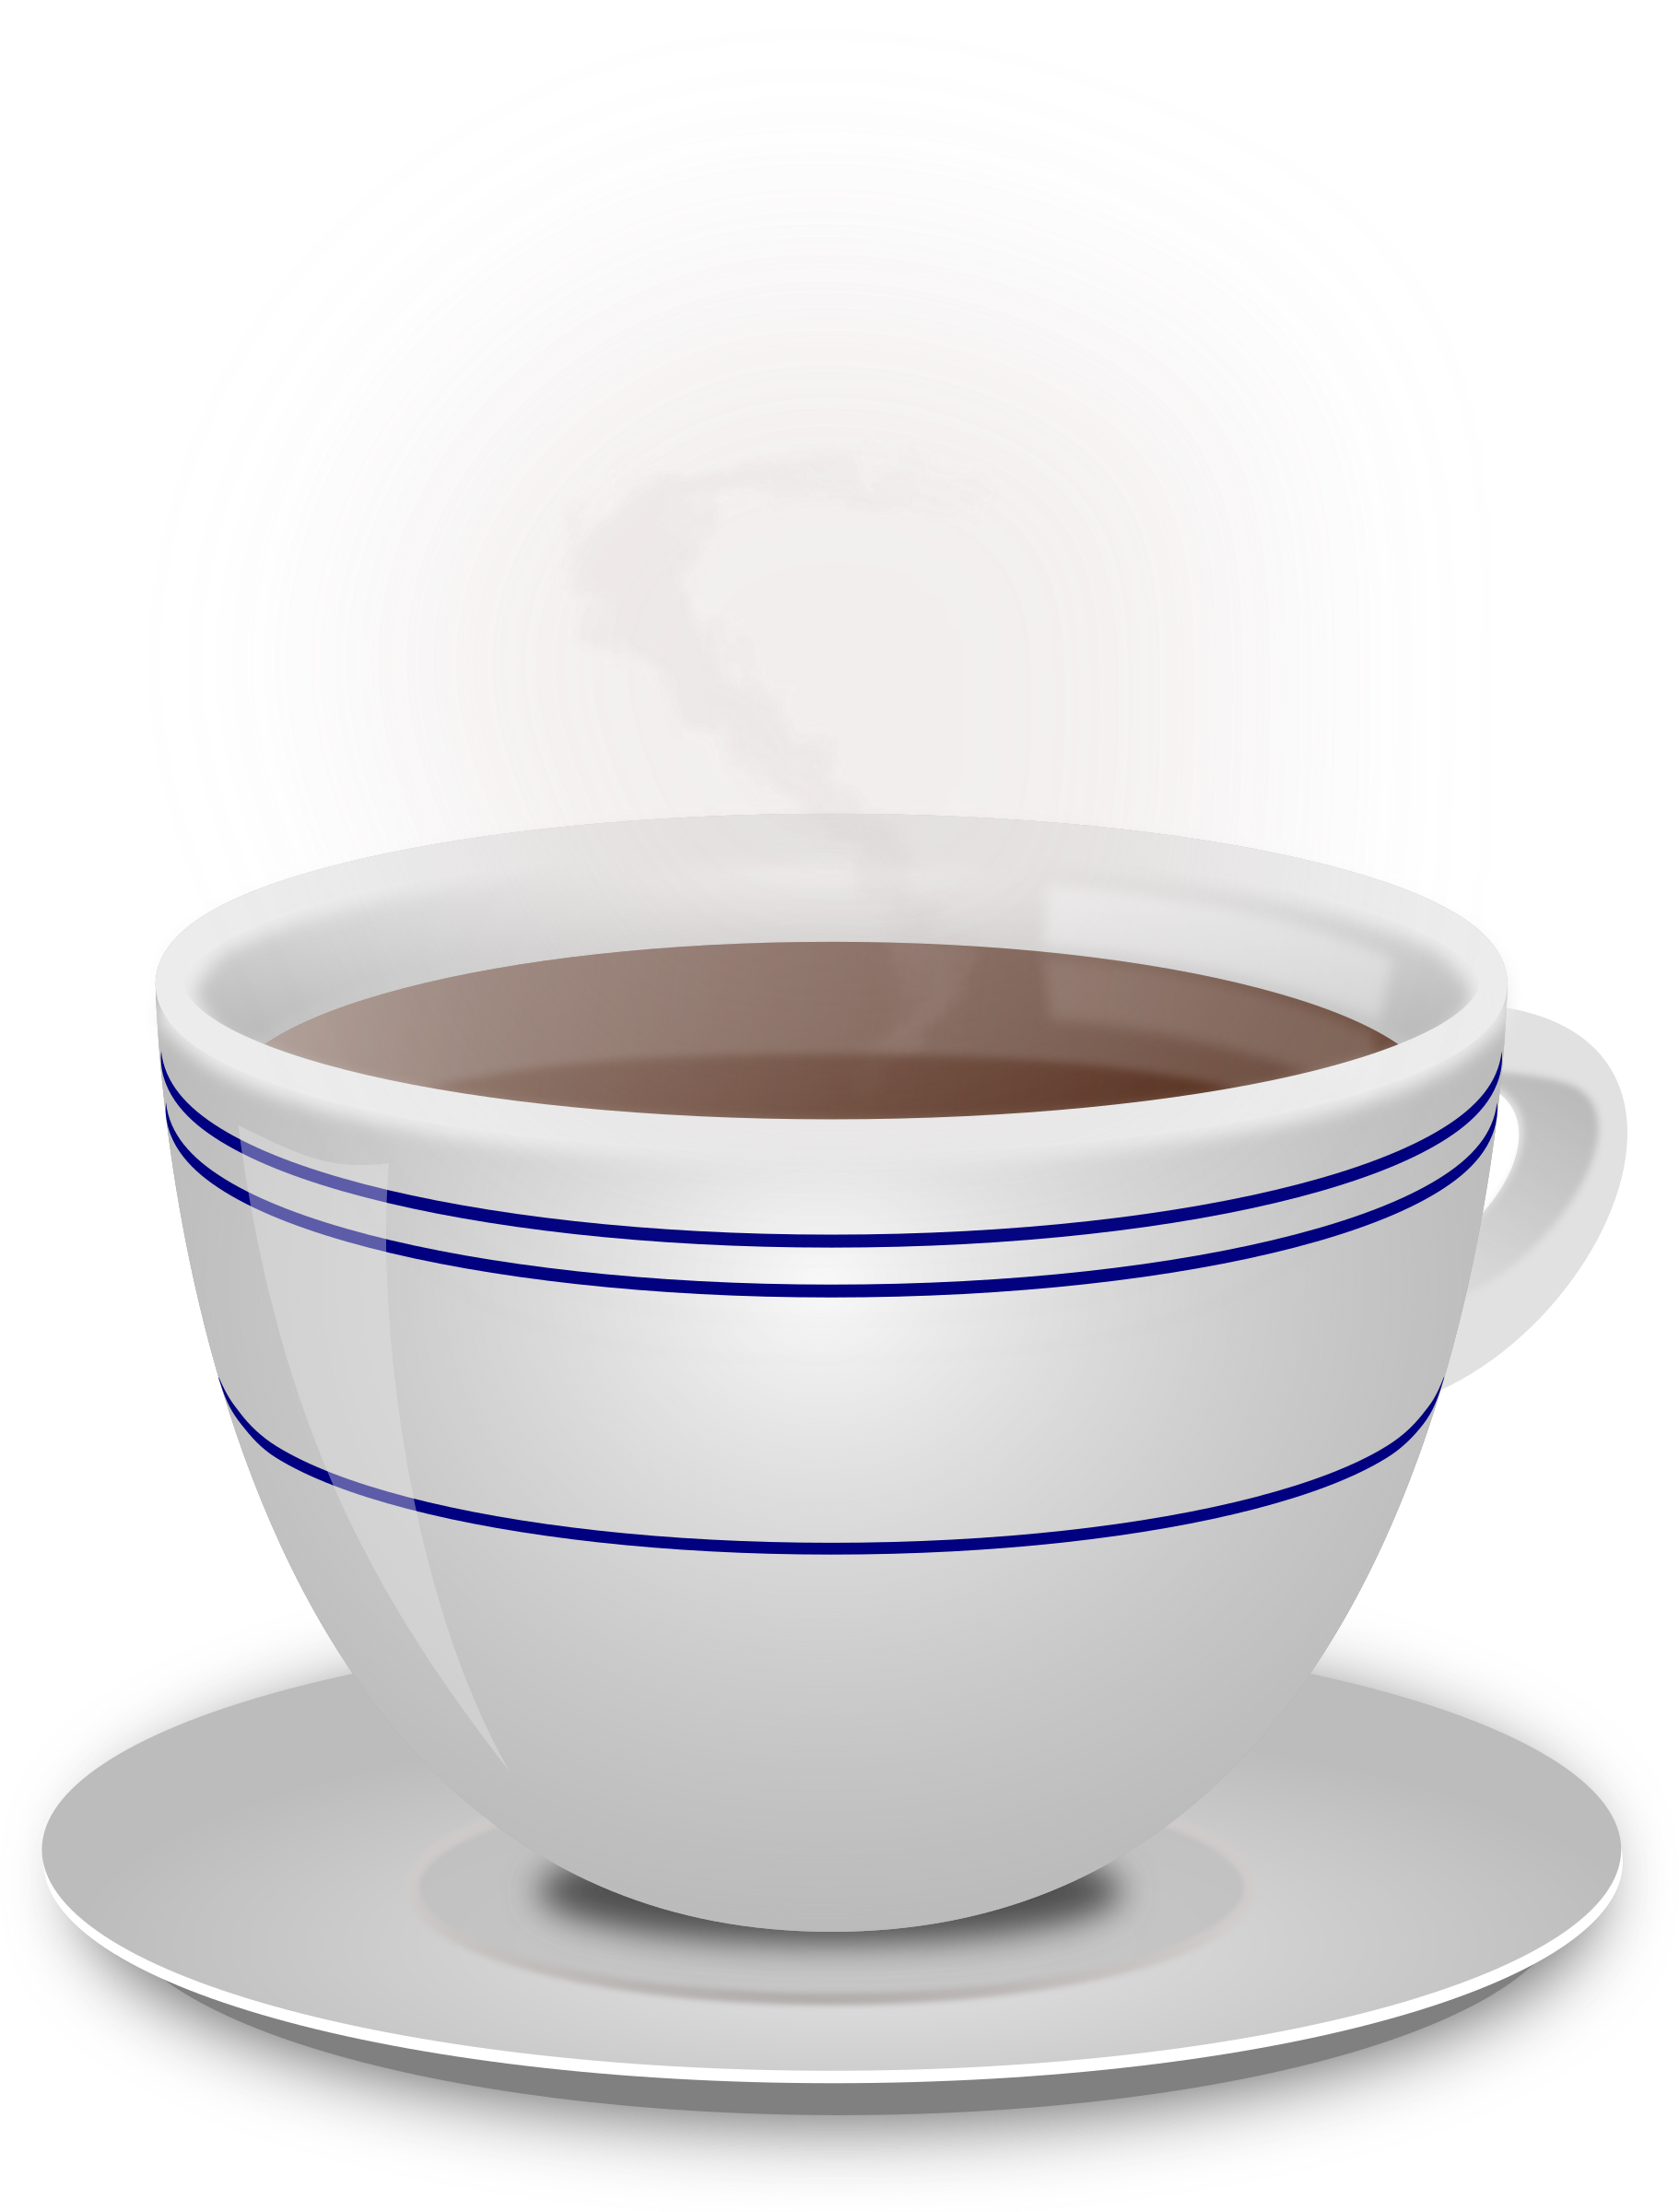 jpg transparent download Free clipart coffee cup steaming. Of big image png